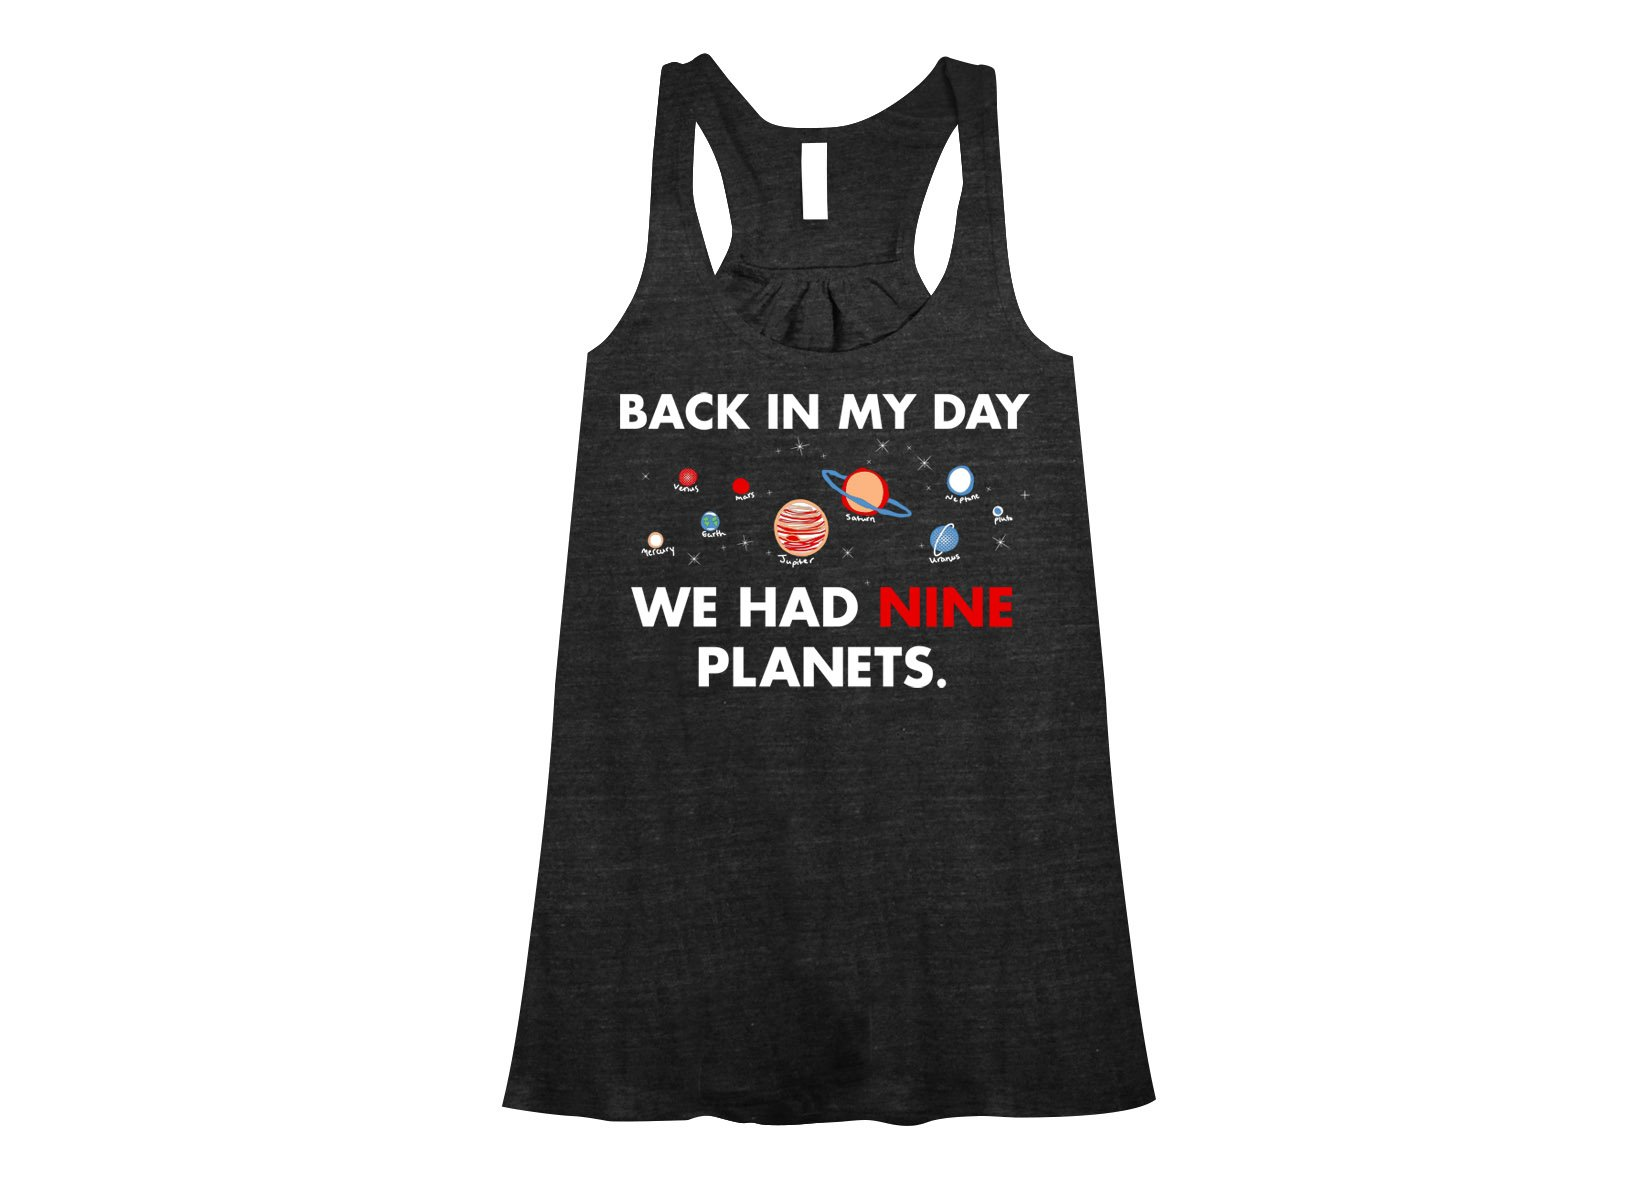 Back In My Day We Had Nine Planets on Womens Tanks T-Shirt